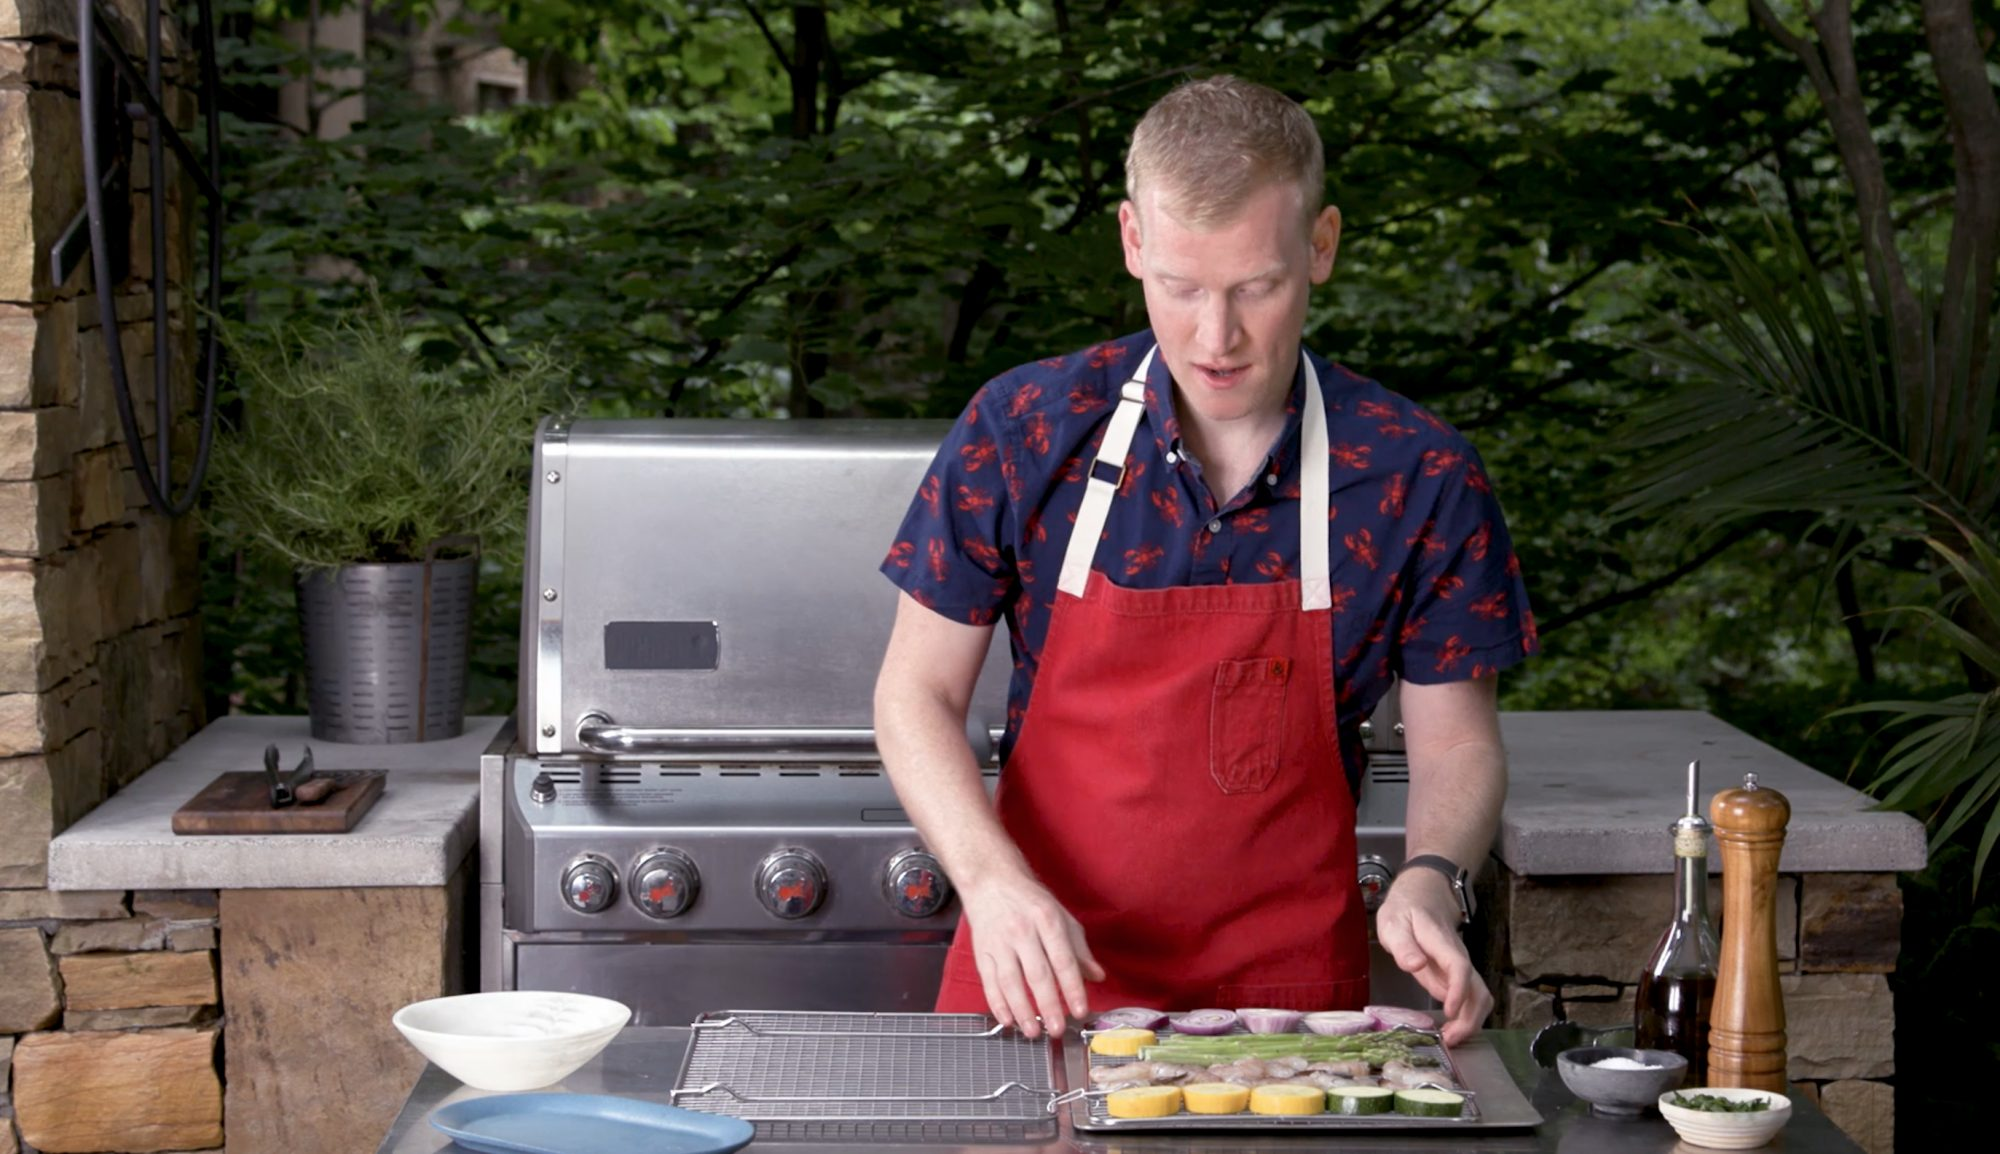 How to Make a DIY Grilling Basket in Under a Minute